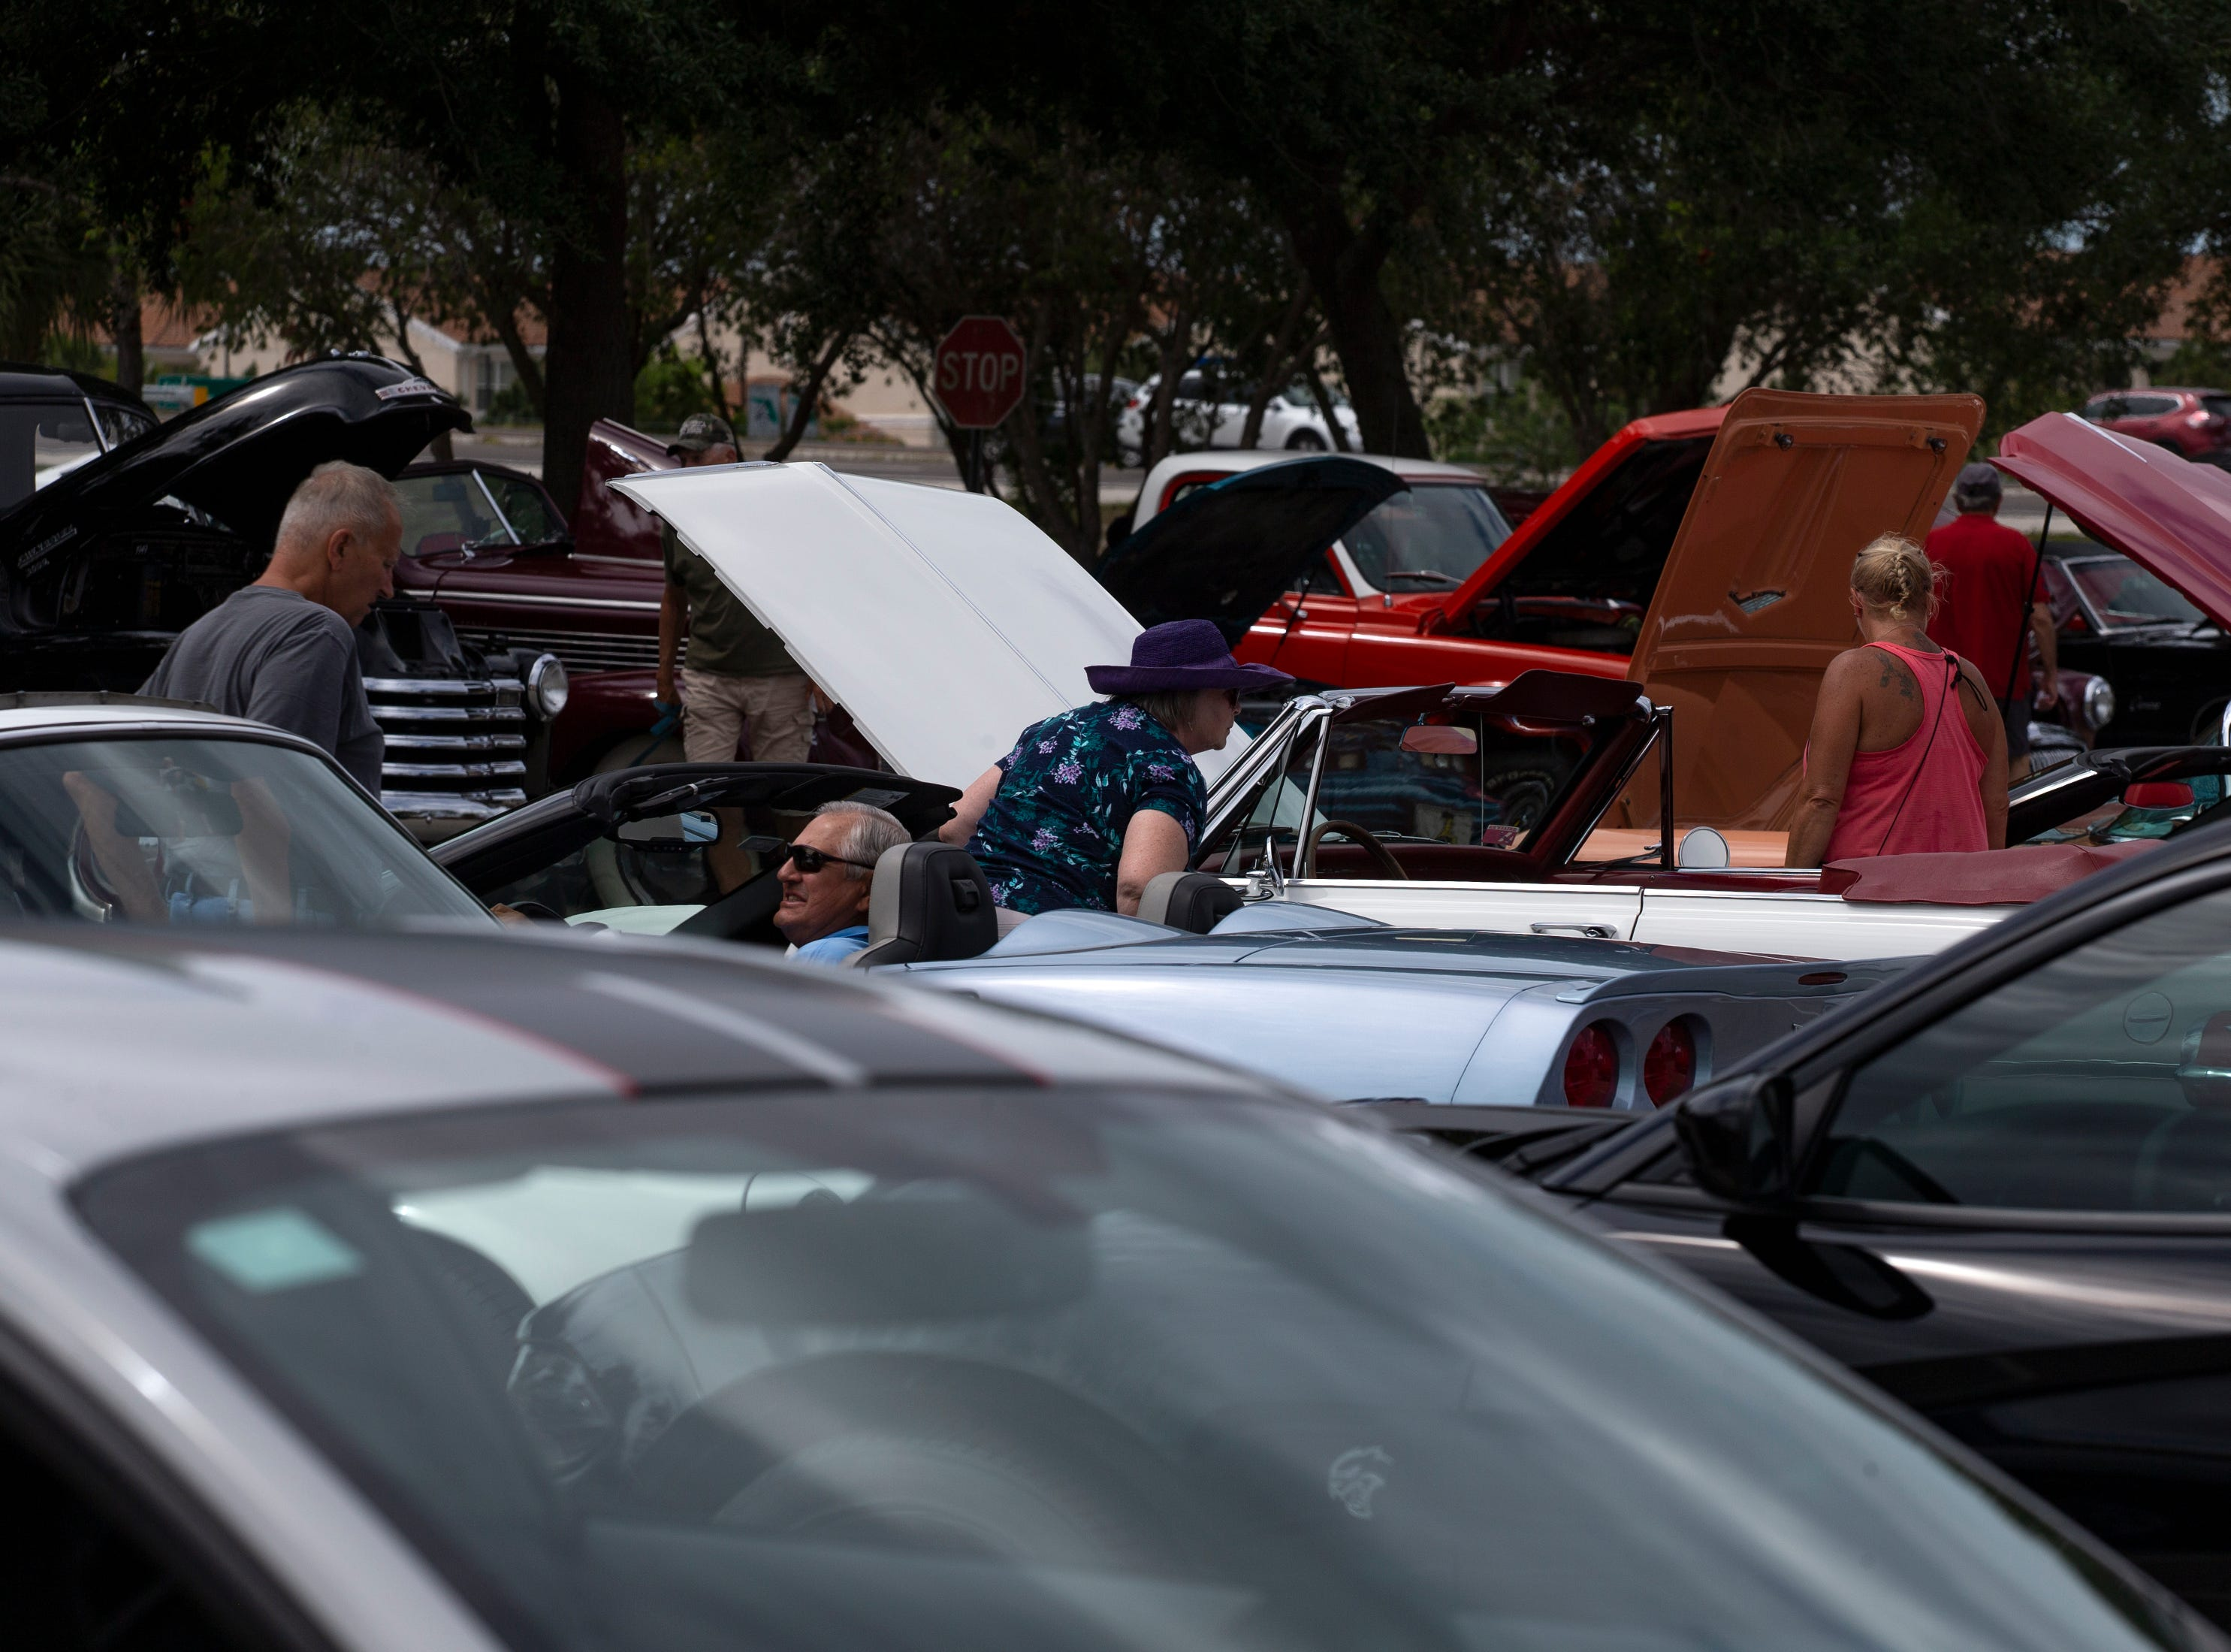 Car lovers look at vehicles on display during the Cruis'n for a Cause event on Saturday, April 13, 2019 at the Miromar Outlets in Estero.